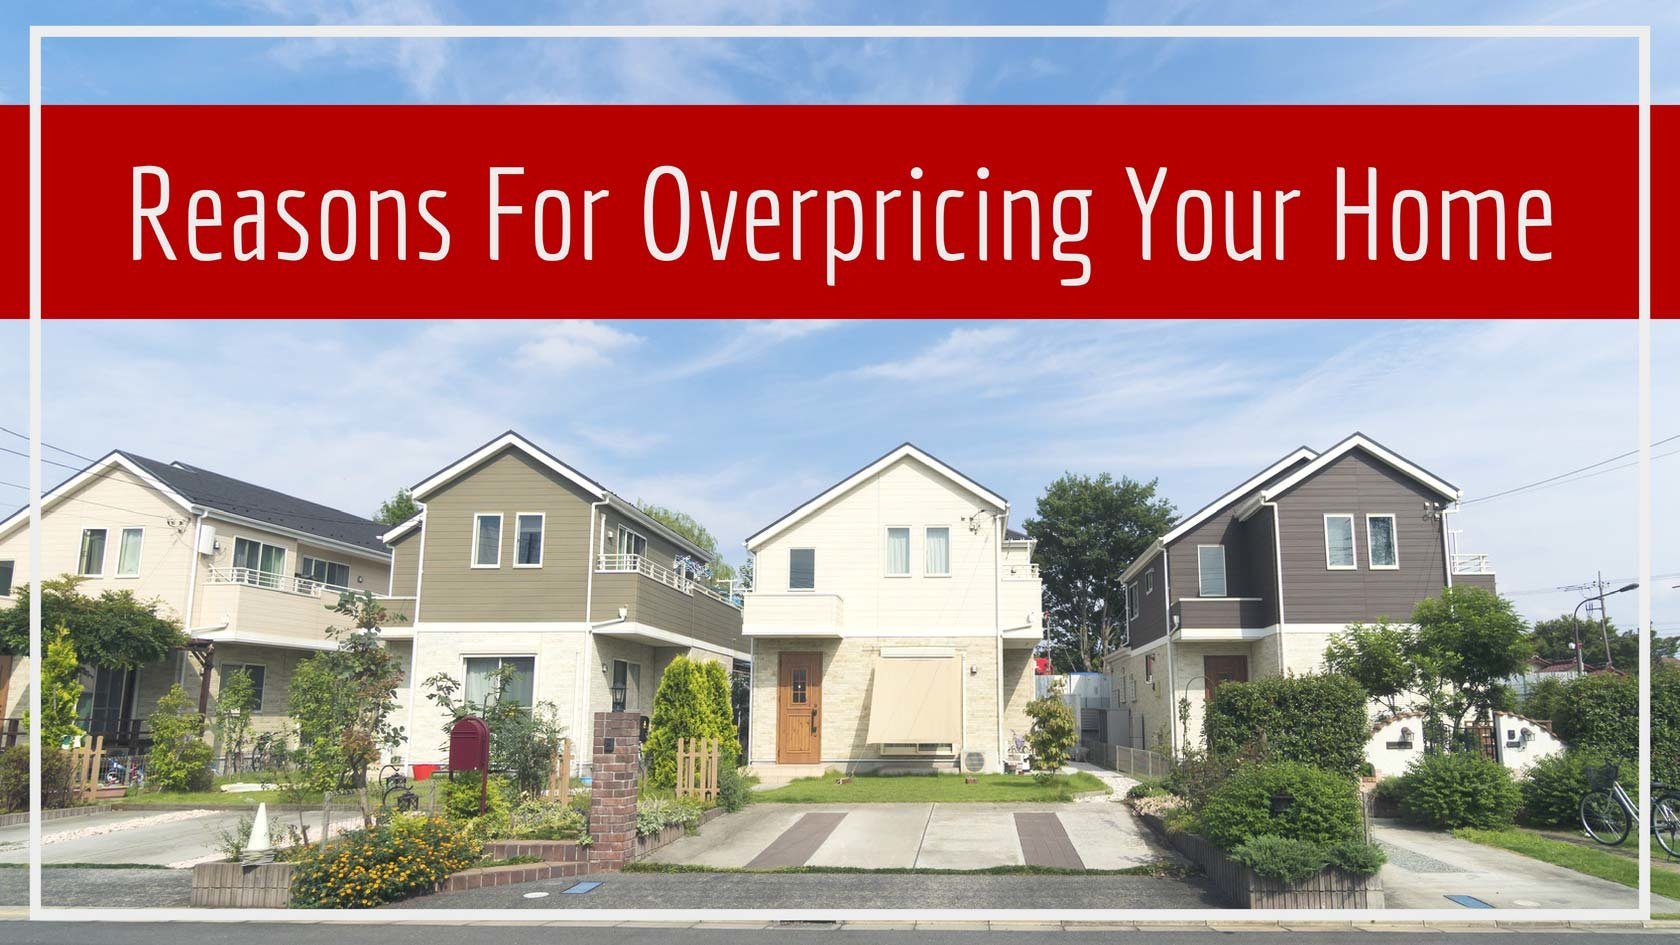 When Homeowners Overprice Their Homes